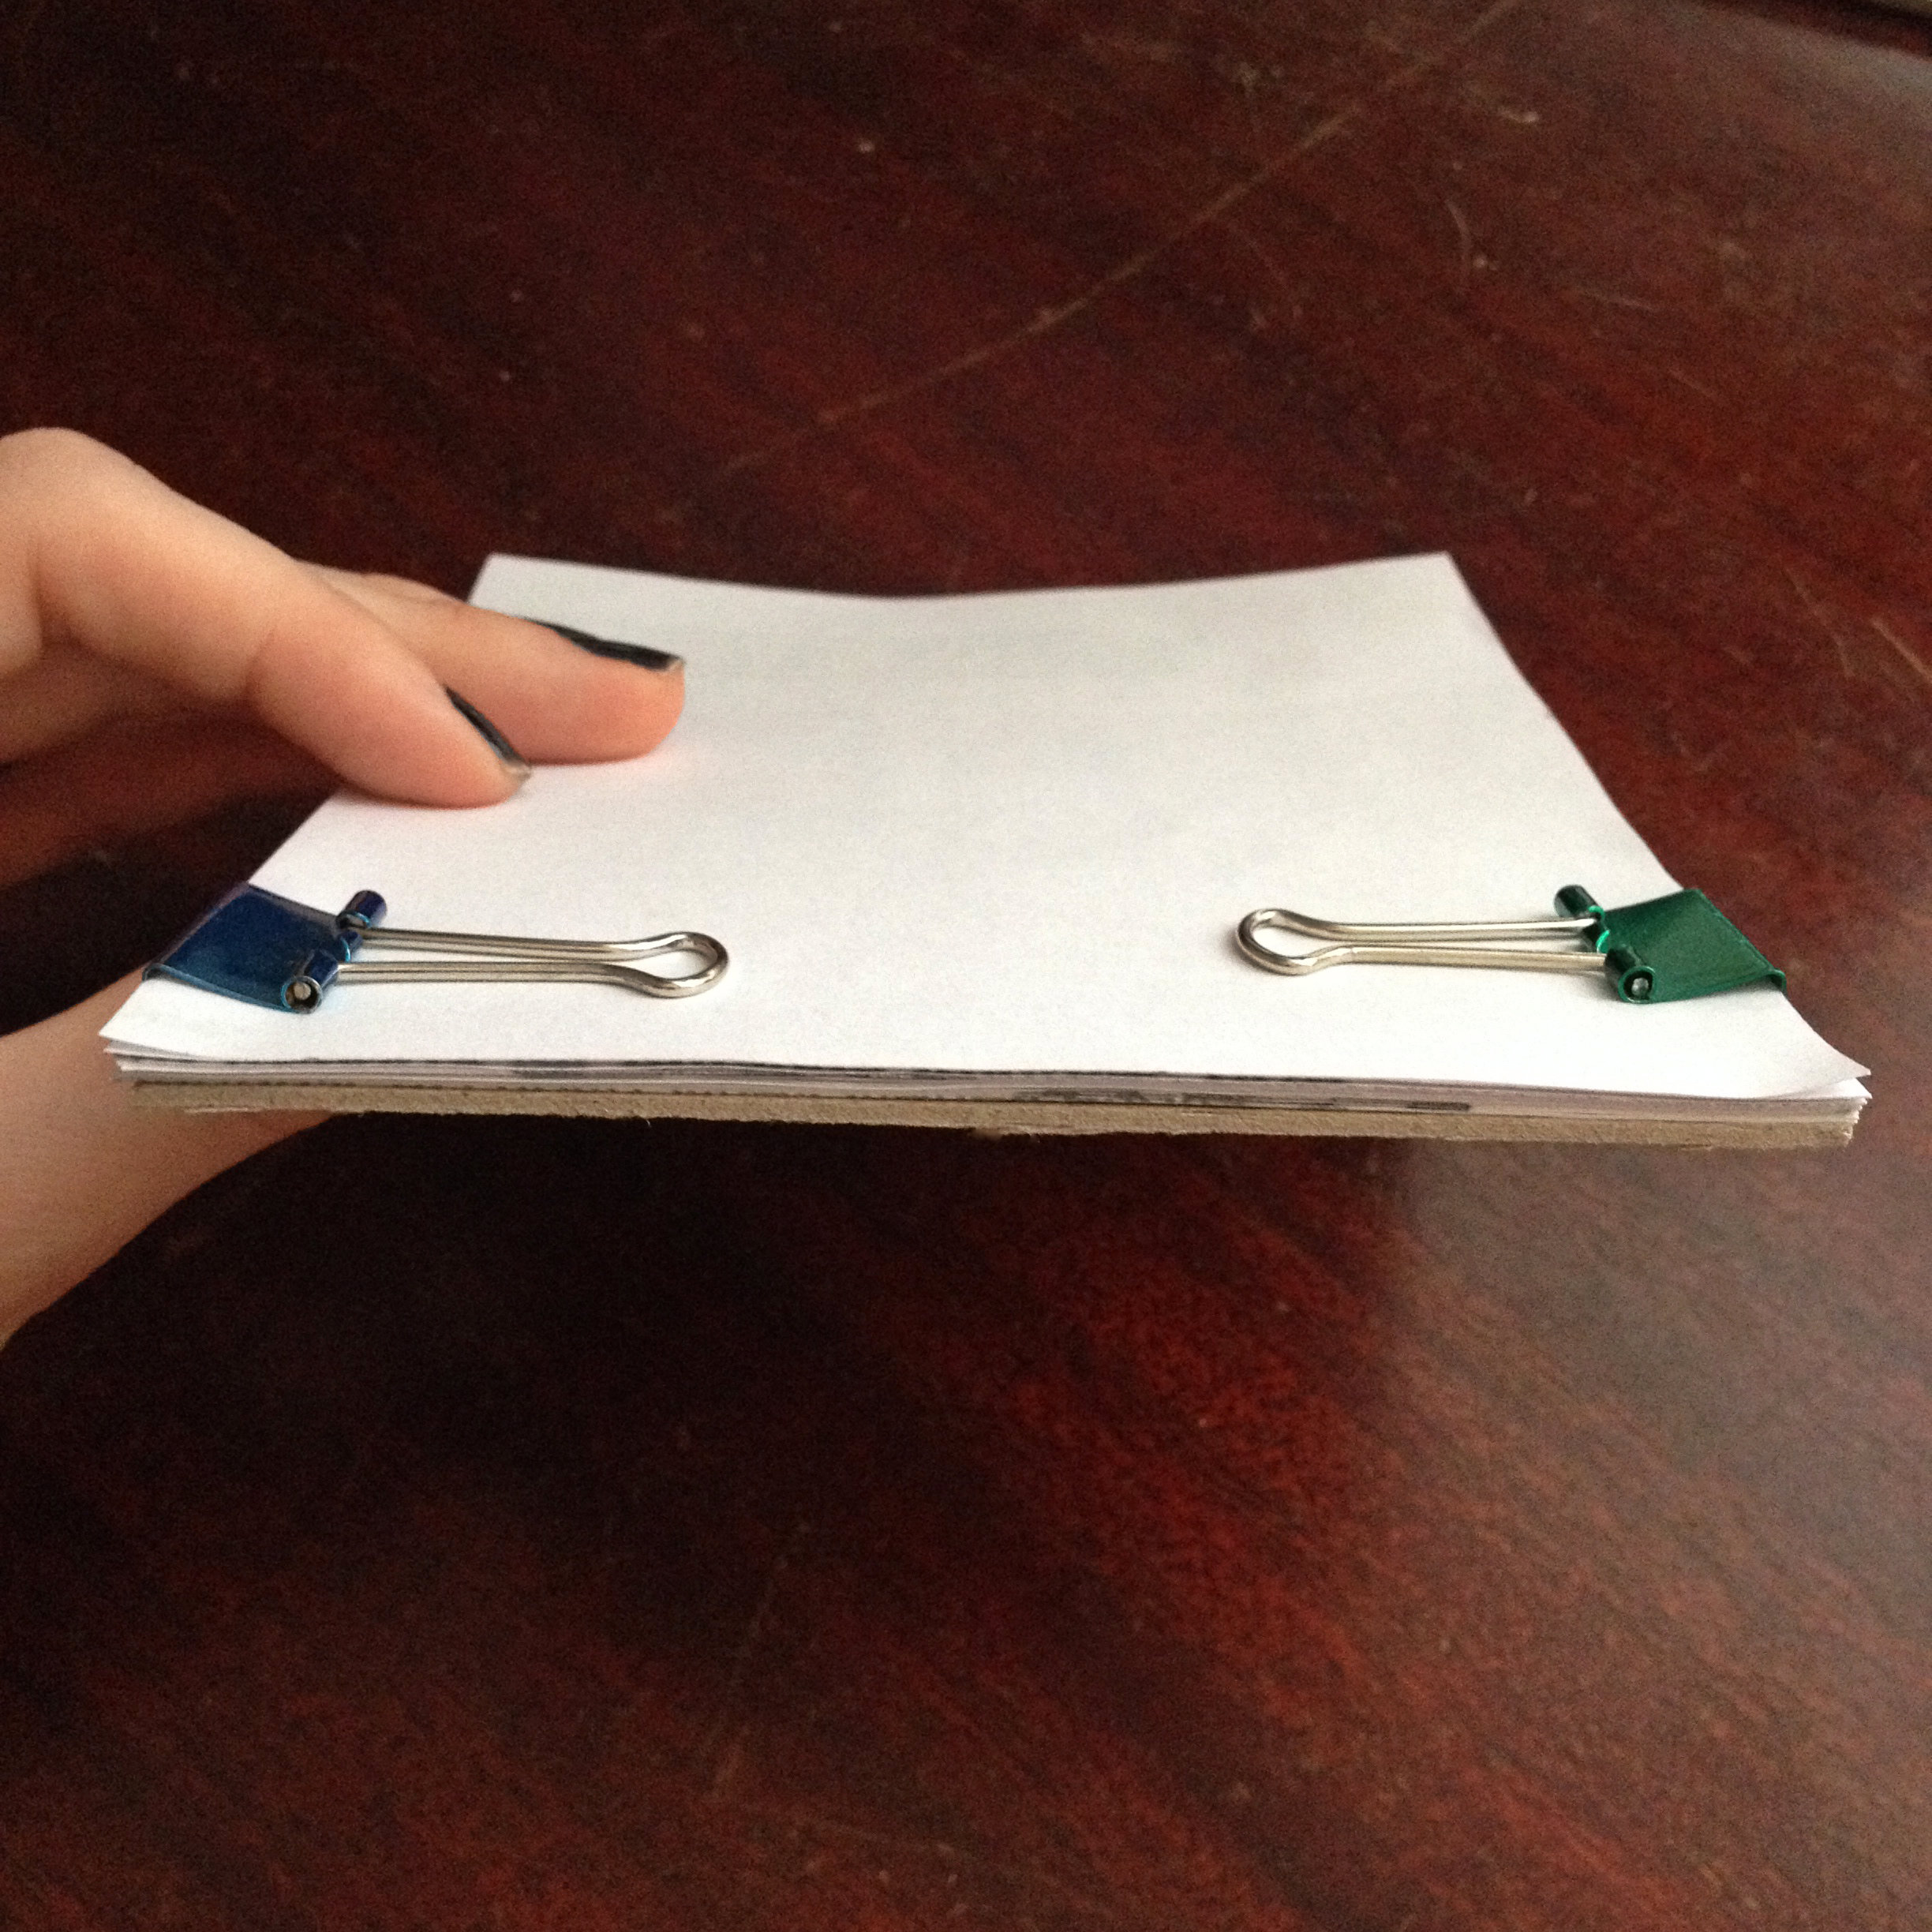 How To: Make A Tear-off Notepad